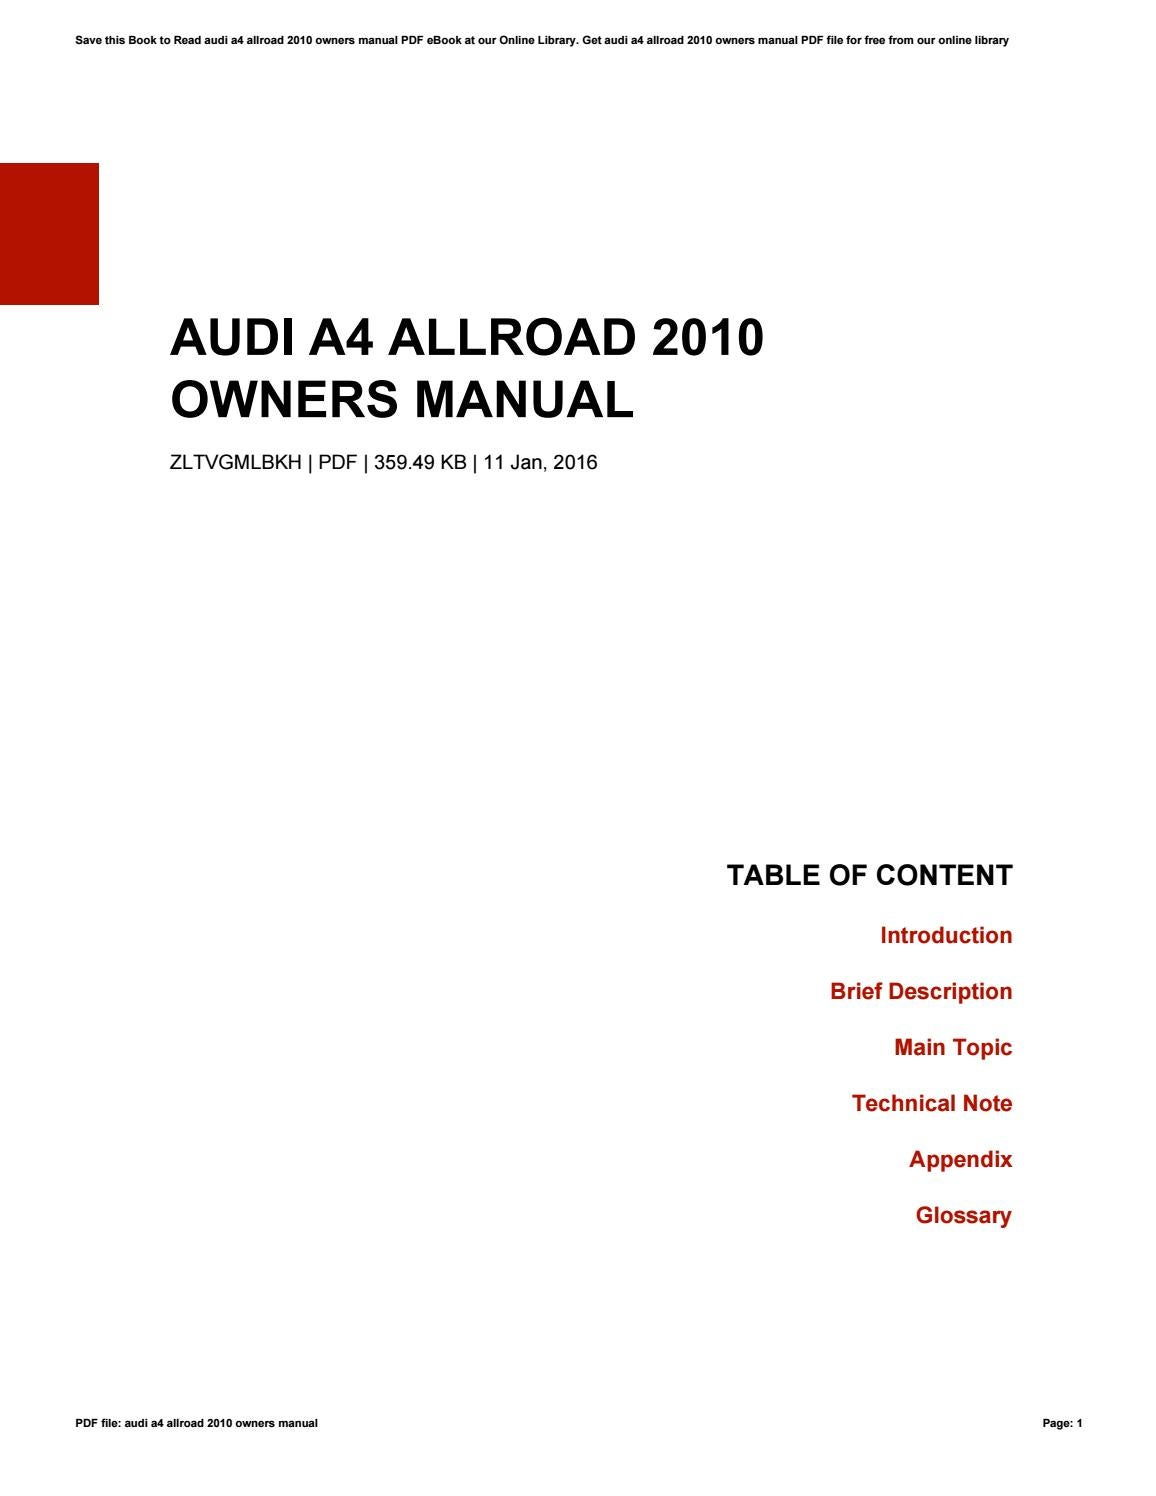 Audi a4 allroad 2010 owners manual by JanetAlejandre4625